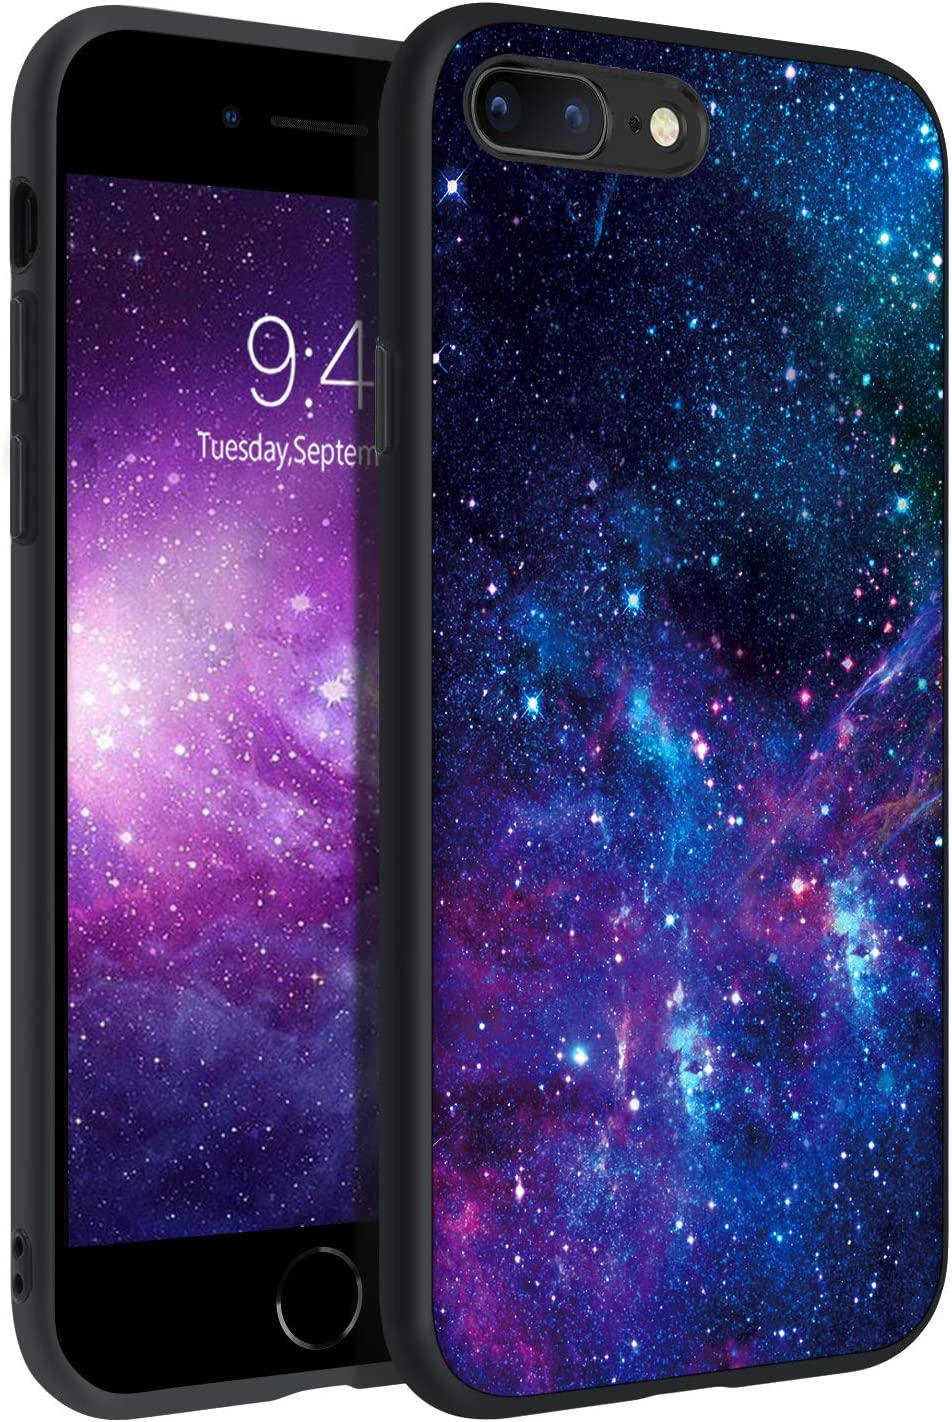 BENTOBEN iPhone 8 Plus Case, iPhone 7 Plus Case, Slim Fit Glow in The Dark Soft Flexible Bumper Protective Shockproof Anti Scratch Non-Slip Cases Cover for 5.5